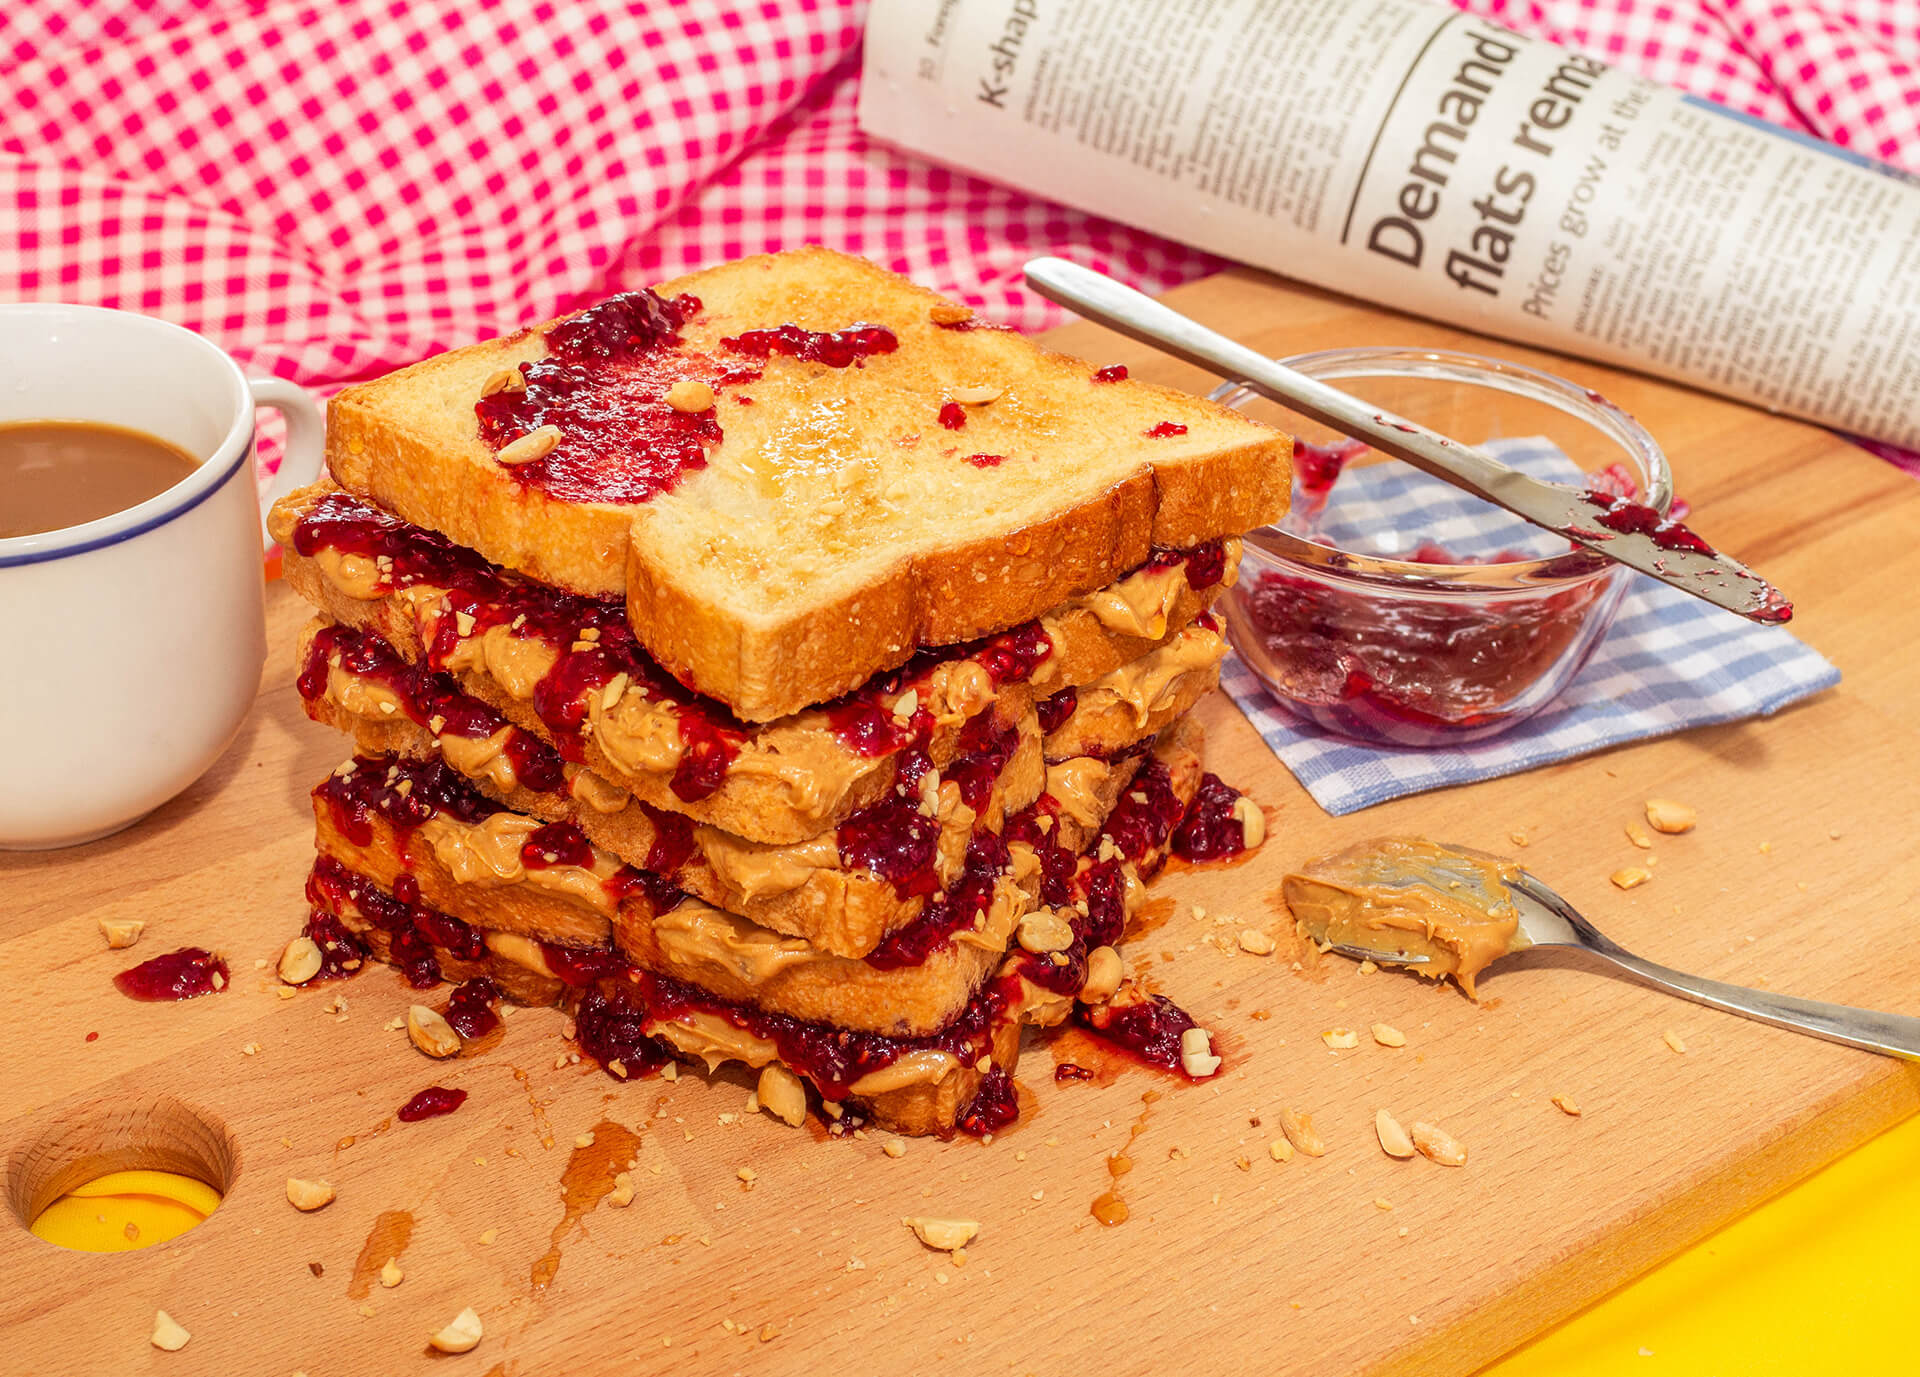 Peanut Butter Jelly food photograph